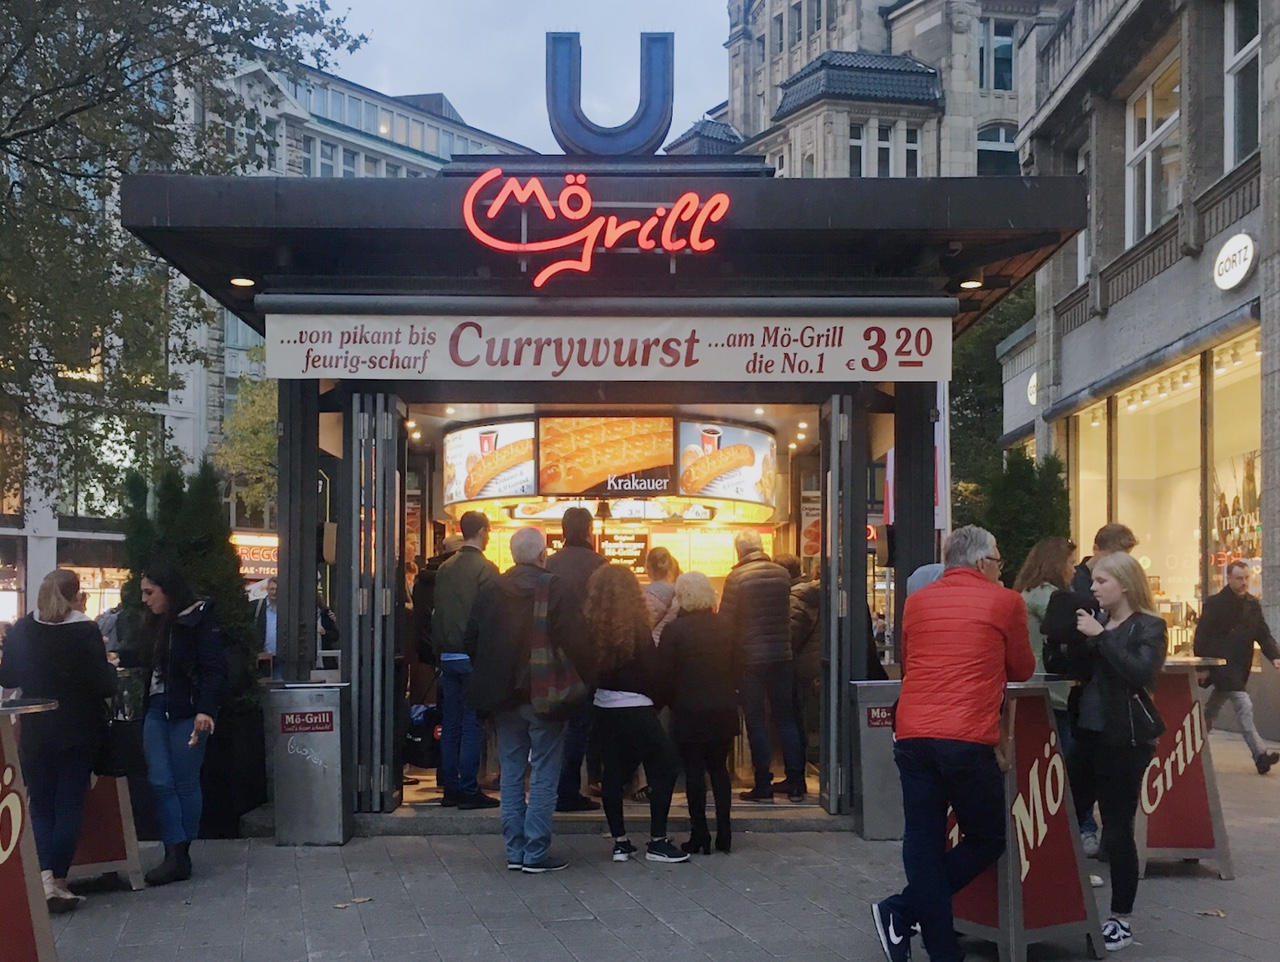 Mo-Grill - Best places to eat in Hamburg